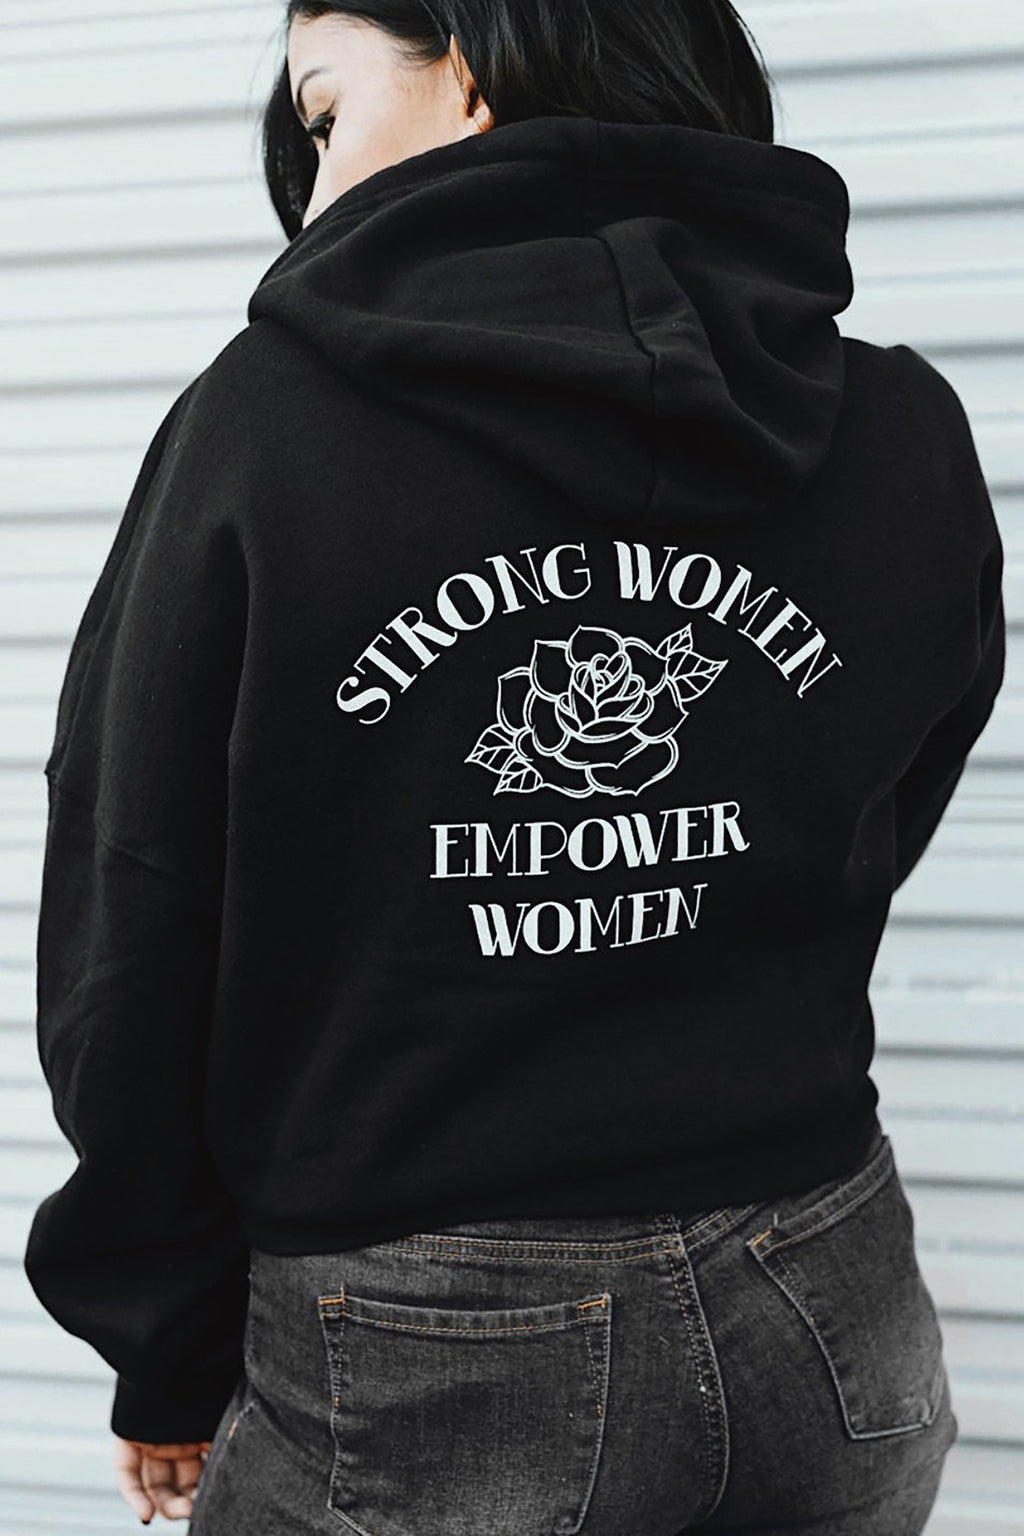 Strong Women Empower Hoodie - REBEL SOUL COLLECTIVE FEMINIST GRAPHIC TEES